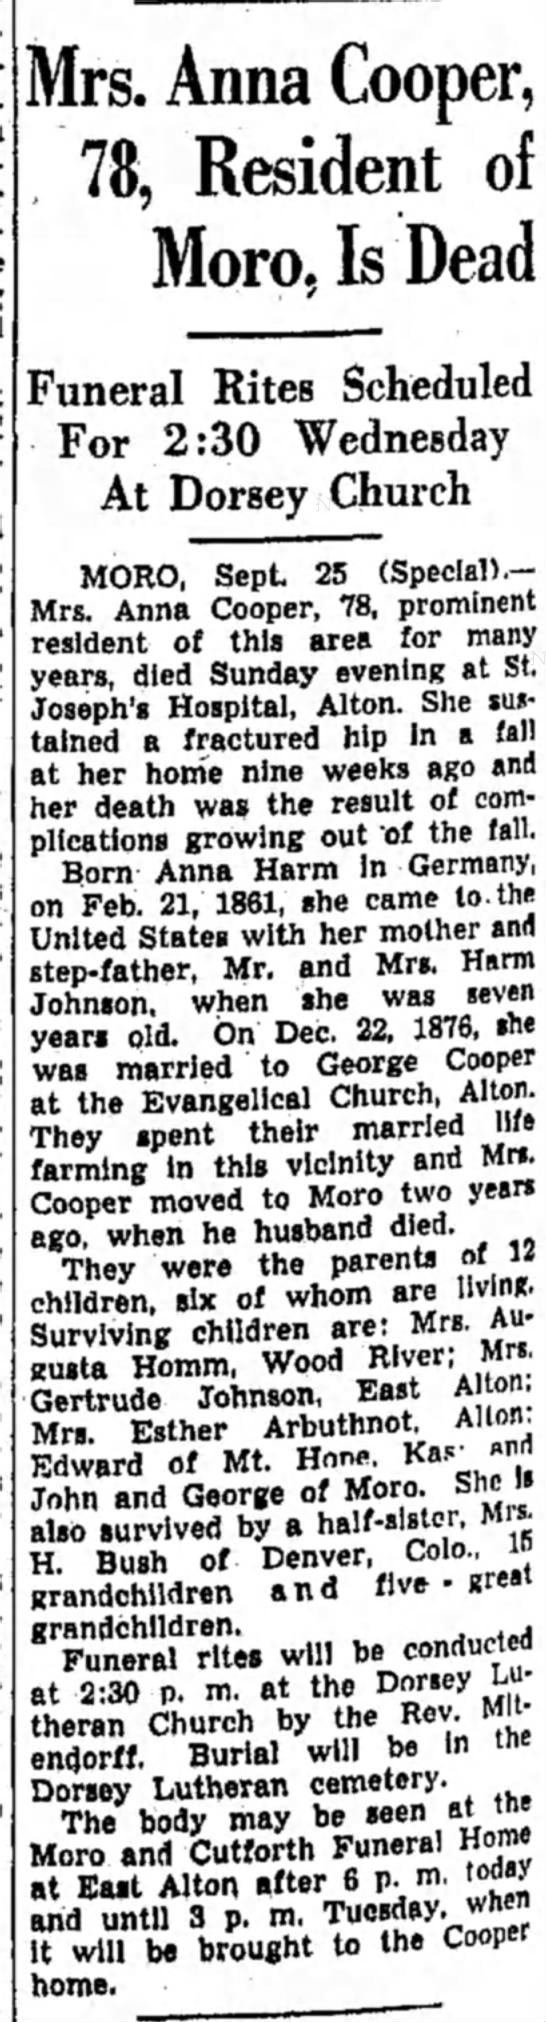 Cooper_Anna_Obit_1939 - Mrs. Anna Cooper, 78, Resident of Moro. Is Dead...